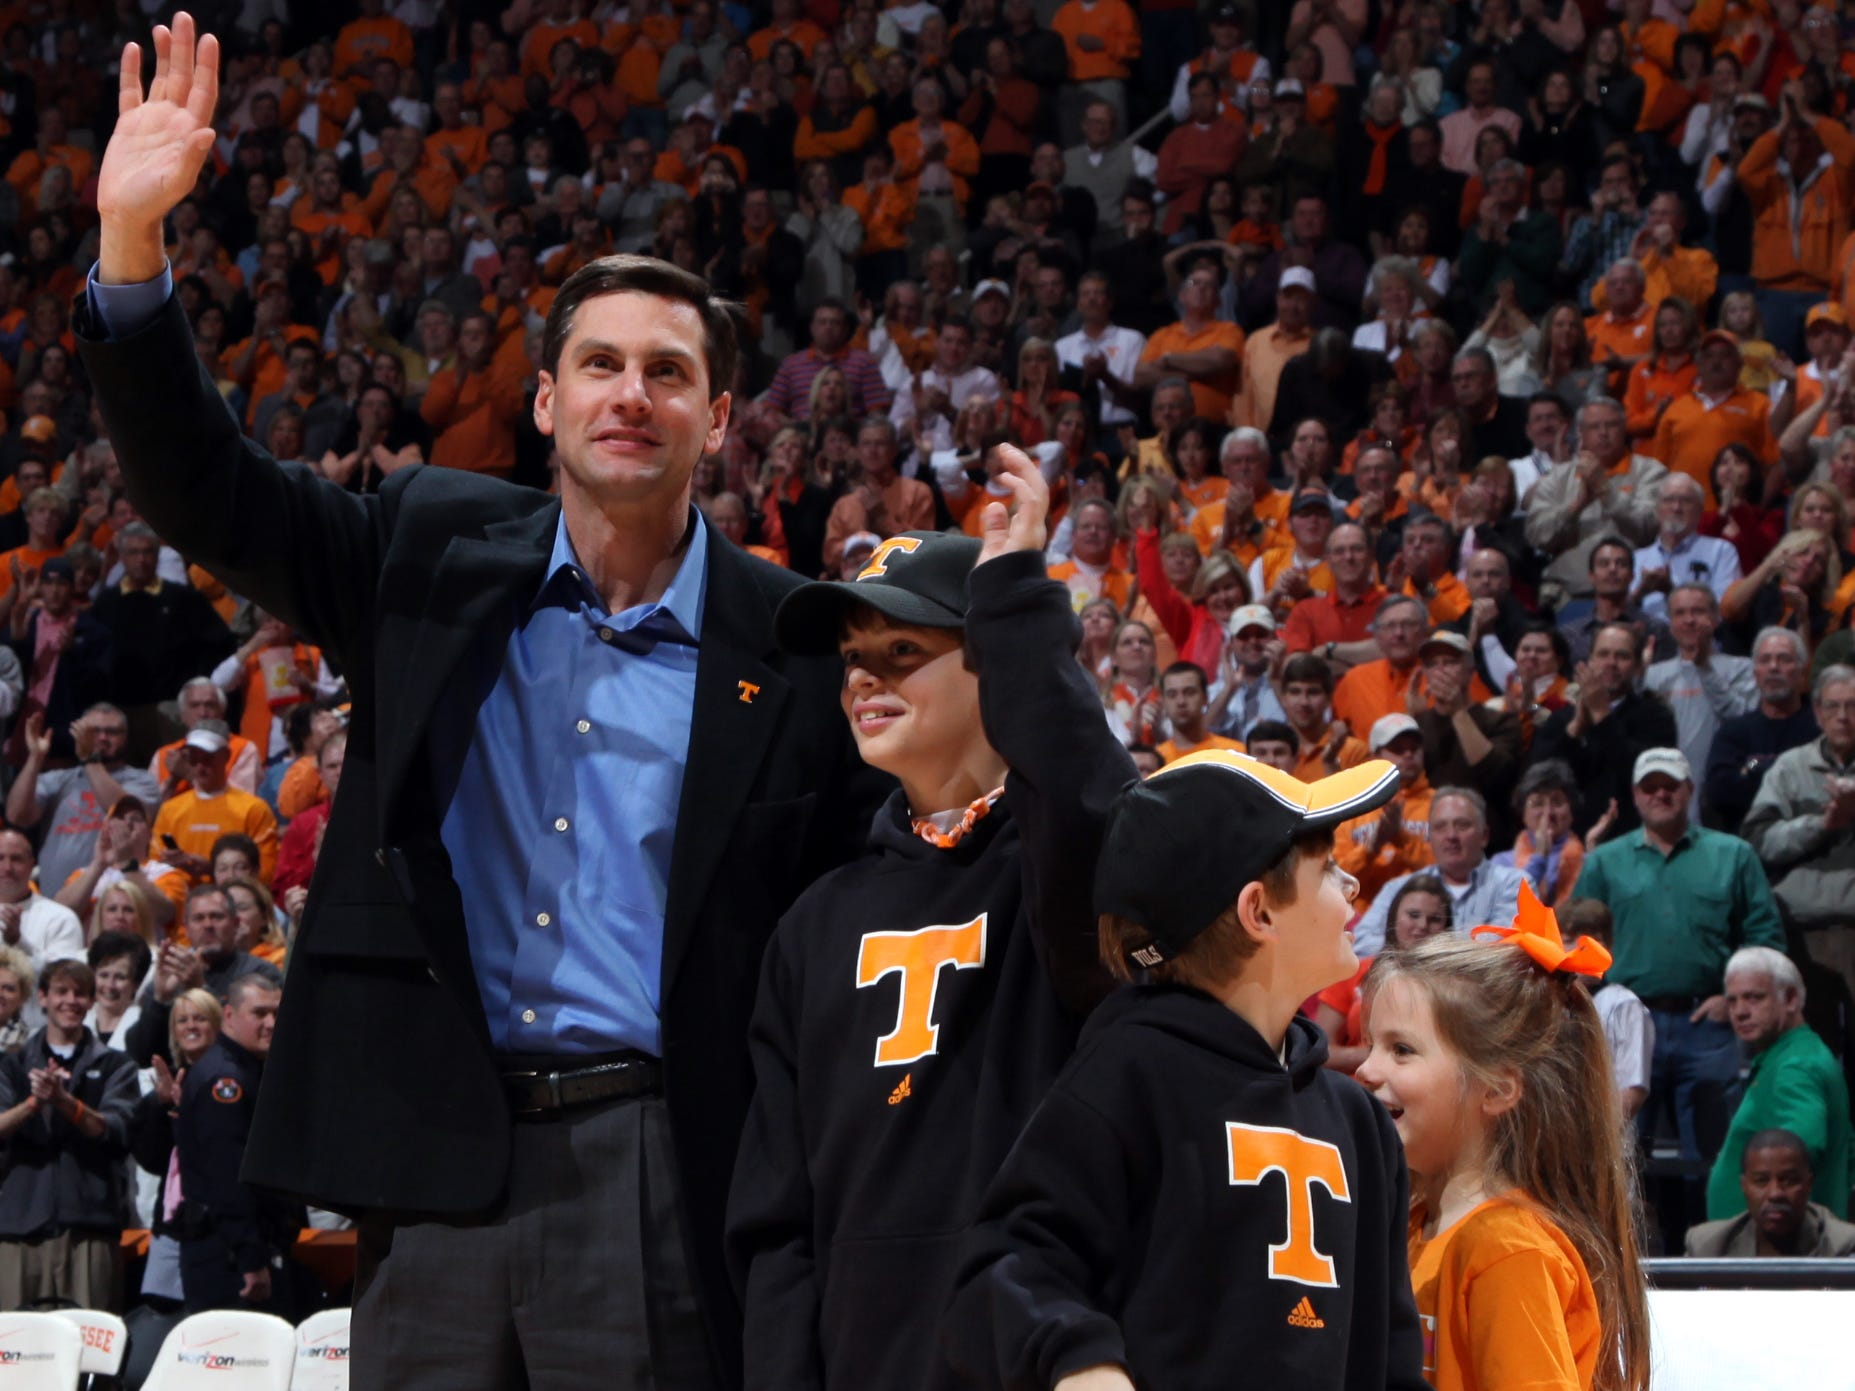 Tennessee football head coach Derek Dooley is introduced along with his children John Taylor, Peyton and Juliana during the Vols' matchup against the Ole Miss Rebels at Thompson-Boling Arena Saturday, Jan. 16, 2010.